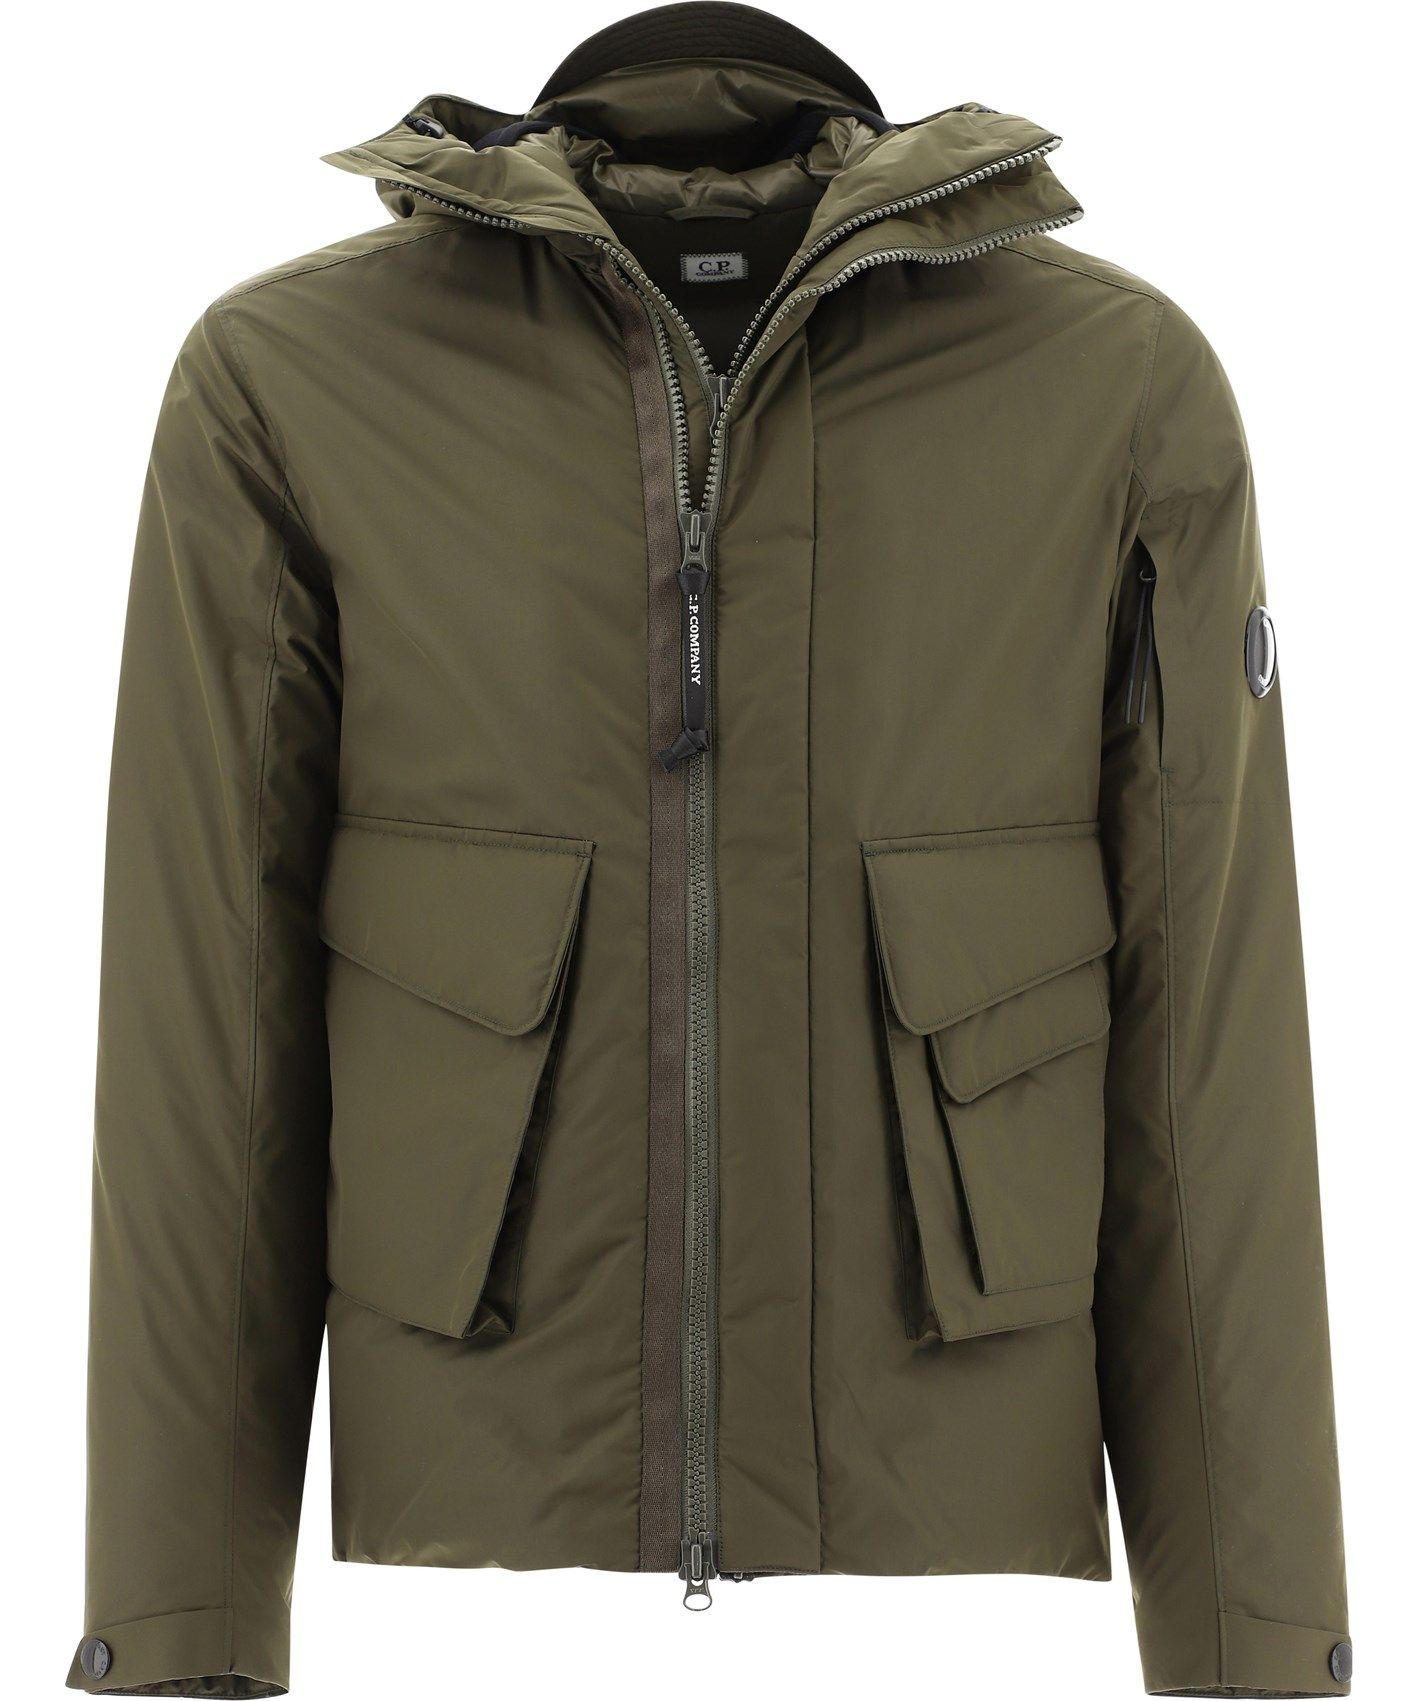 C.p. Company Jackets CP COMPANY MEN'S 09CMOW075A004275A683 GREEN POLYESTER OUTERWEAR JACKET